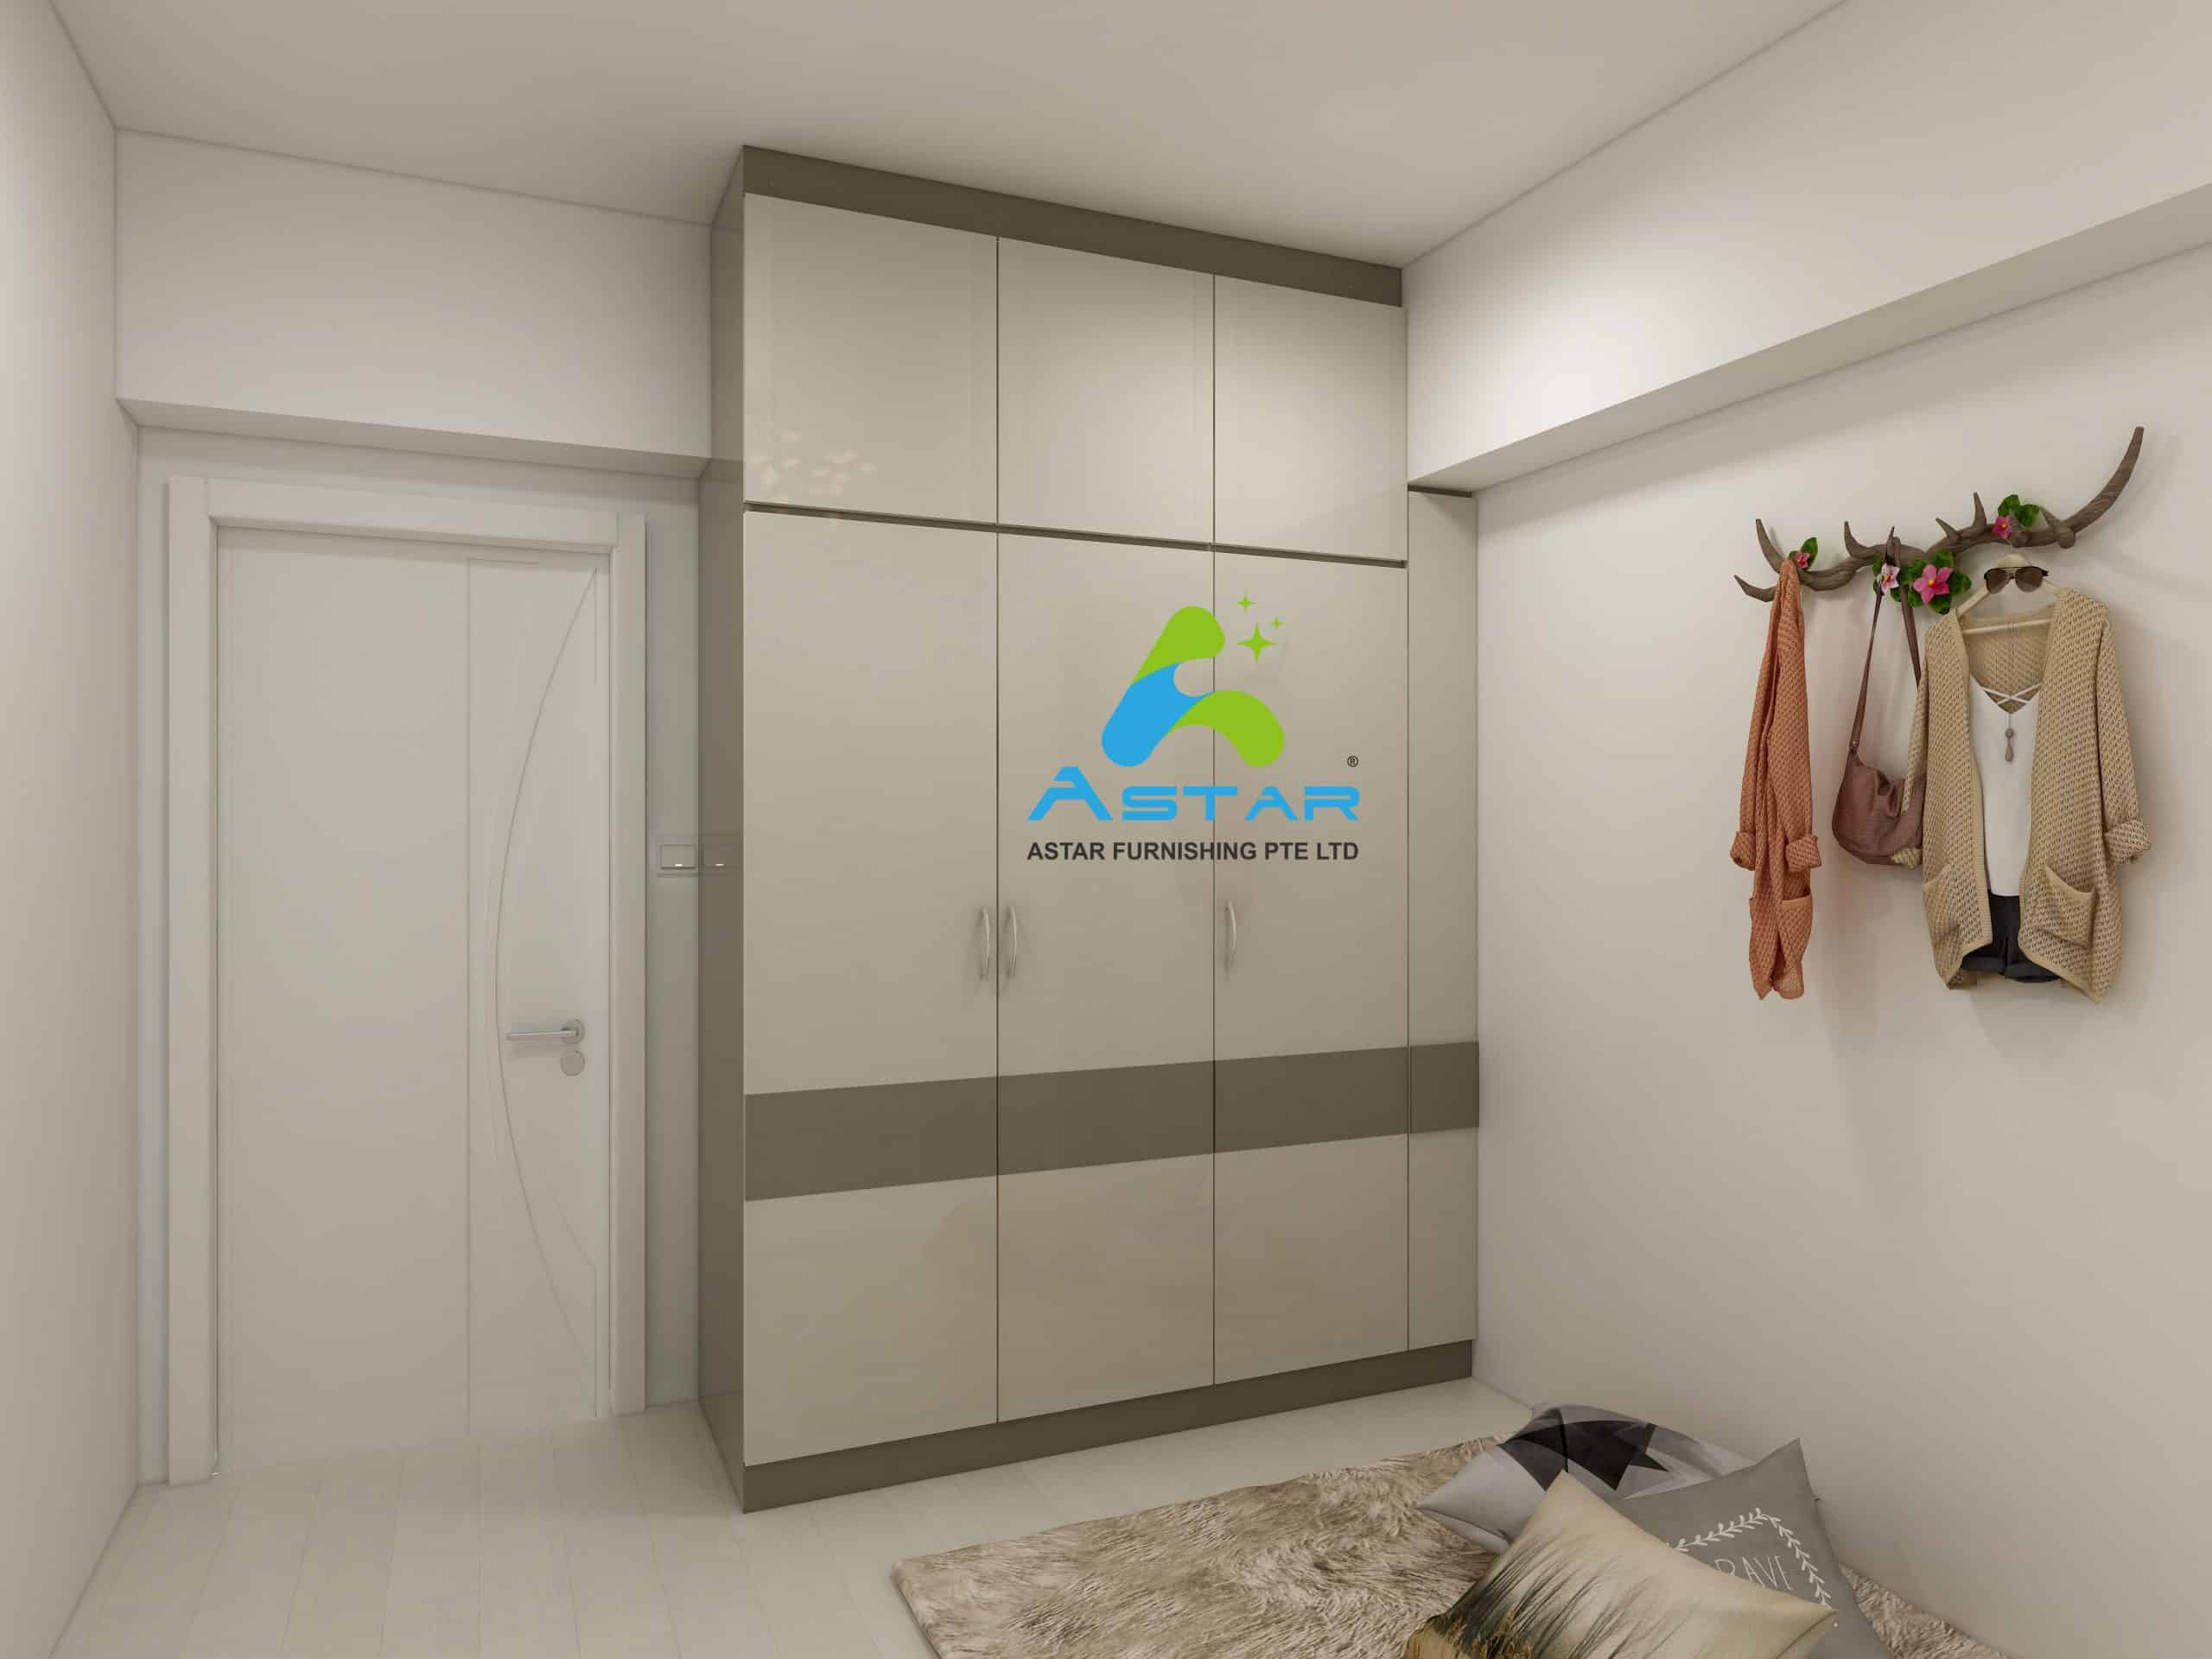 a star furnishing aluminium projects 13. Blk 466A Sembawang Drive 053 scaled